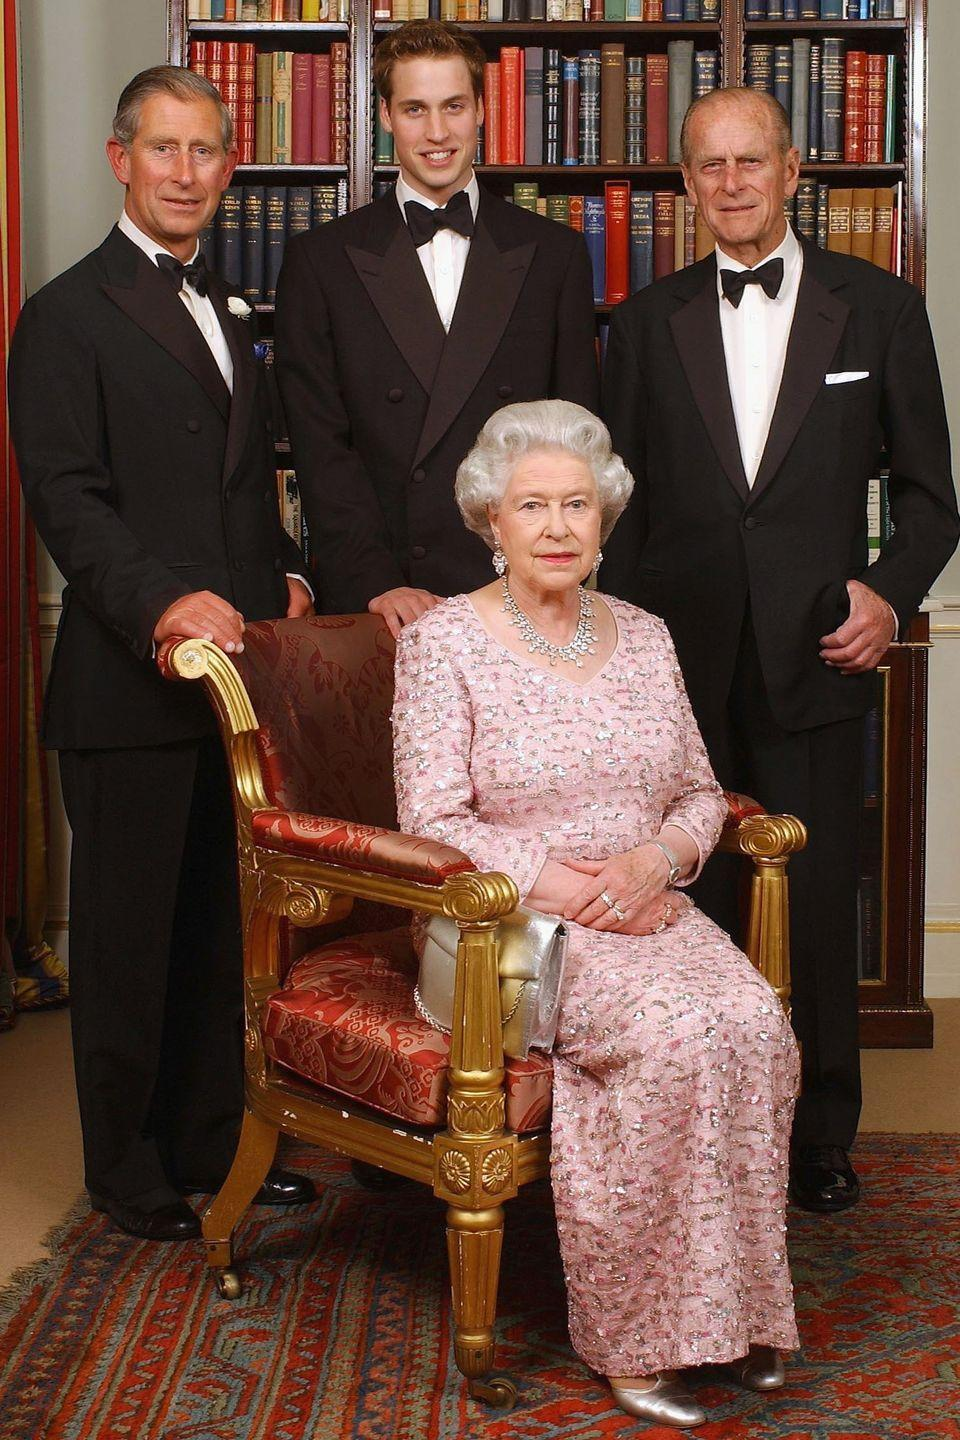 <p>For this official portrait, the queen wore an embellished pink gown with her husband, their son, Prince Charles, and grandson Prince William at Clarence House.</p>